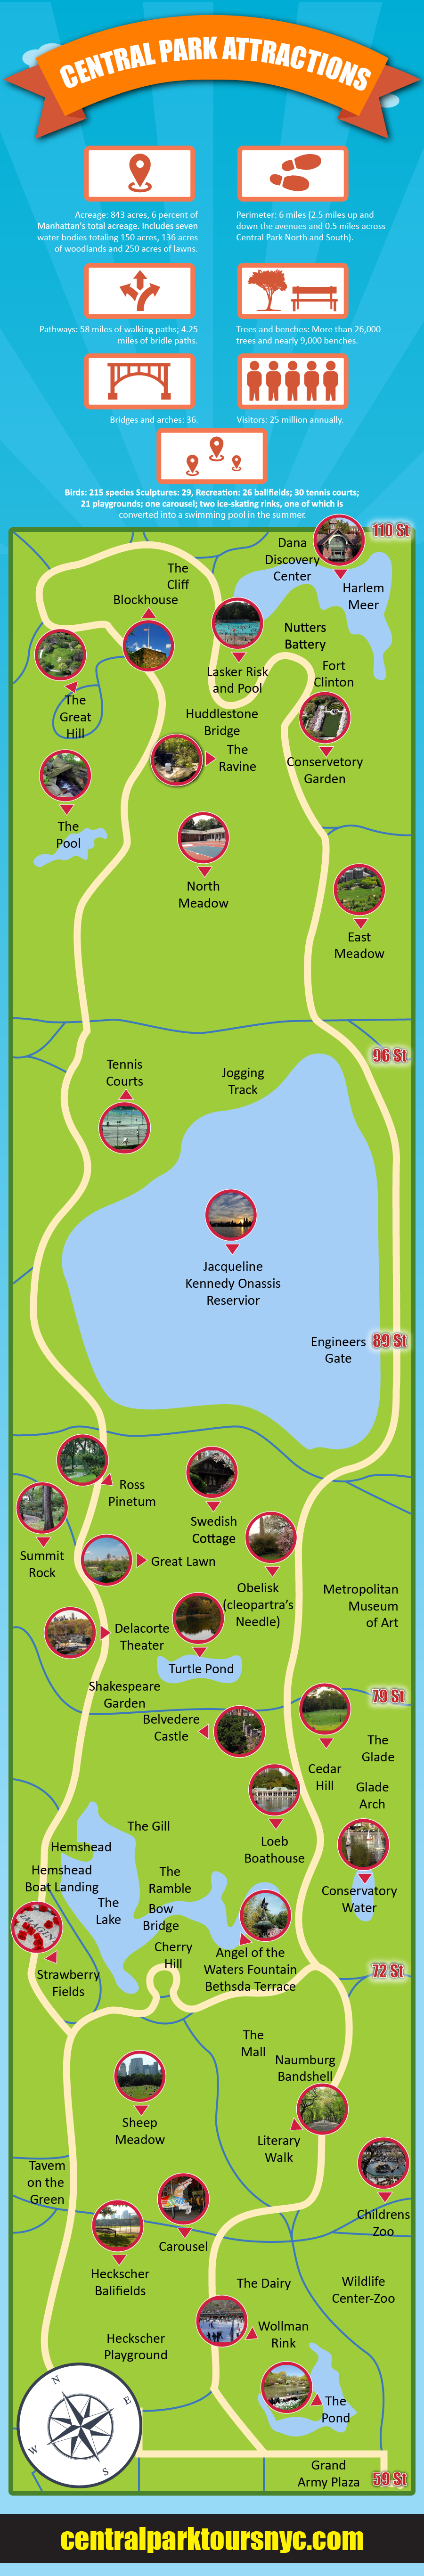 central park attractions map pdf